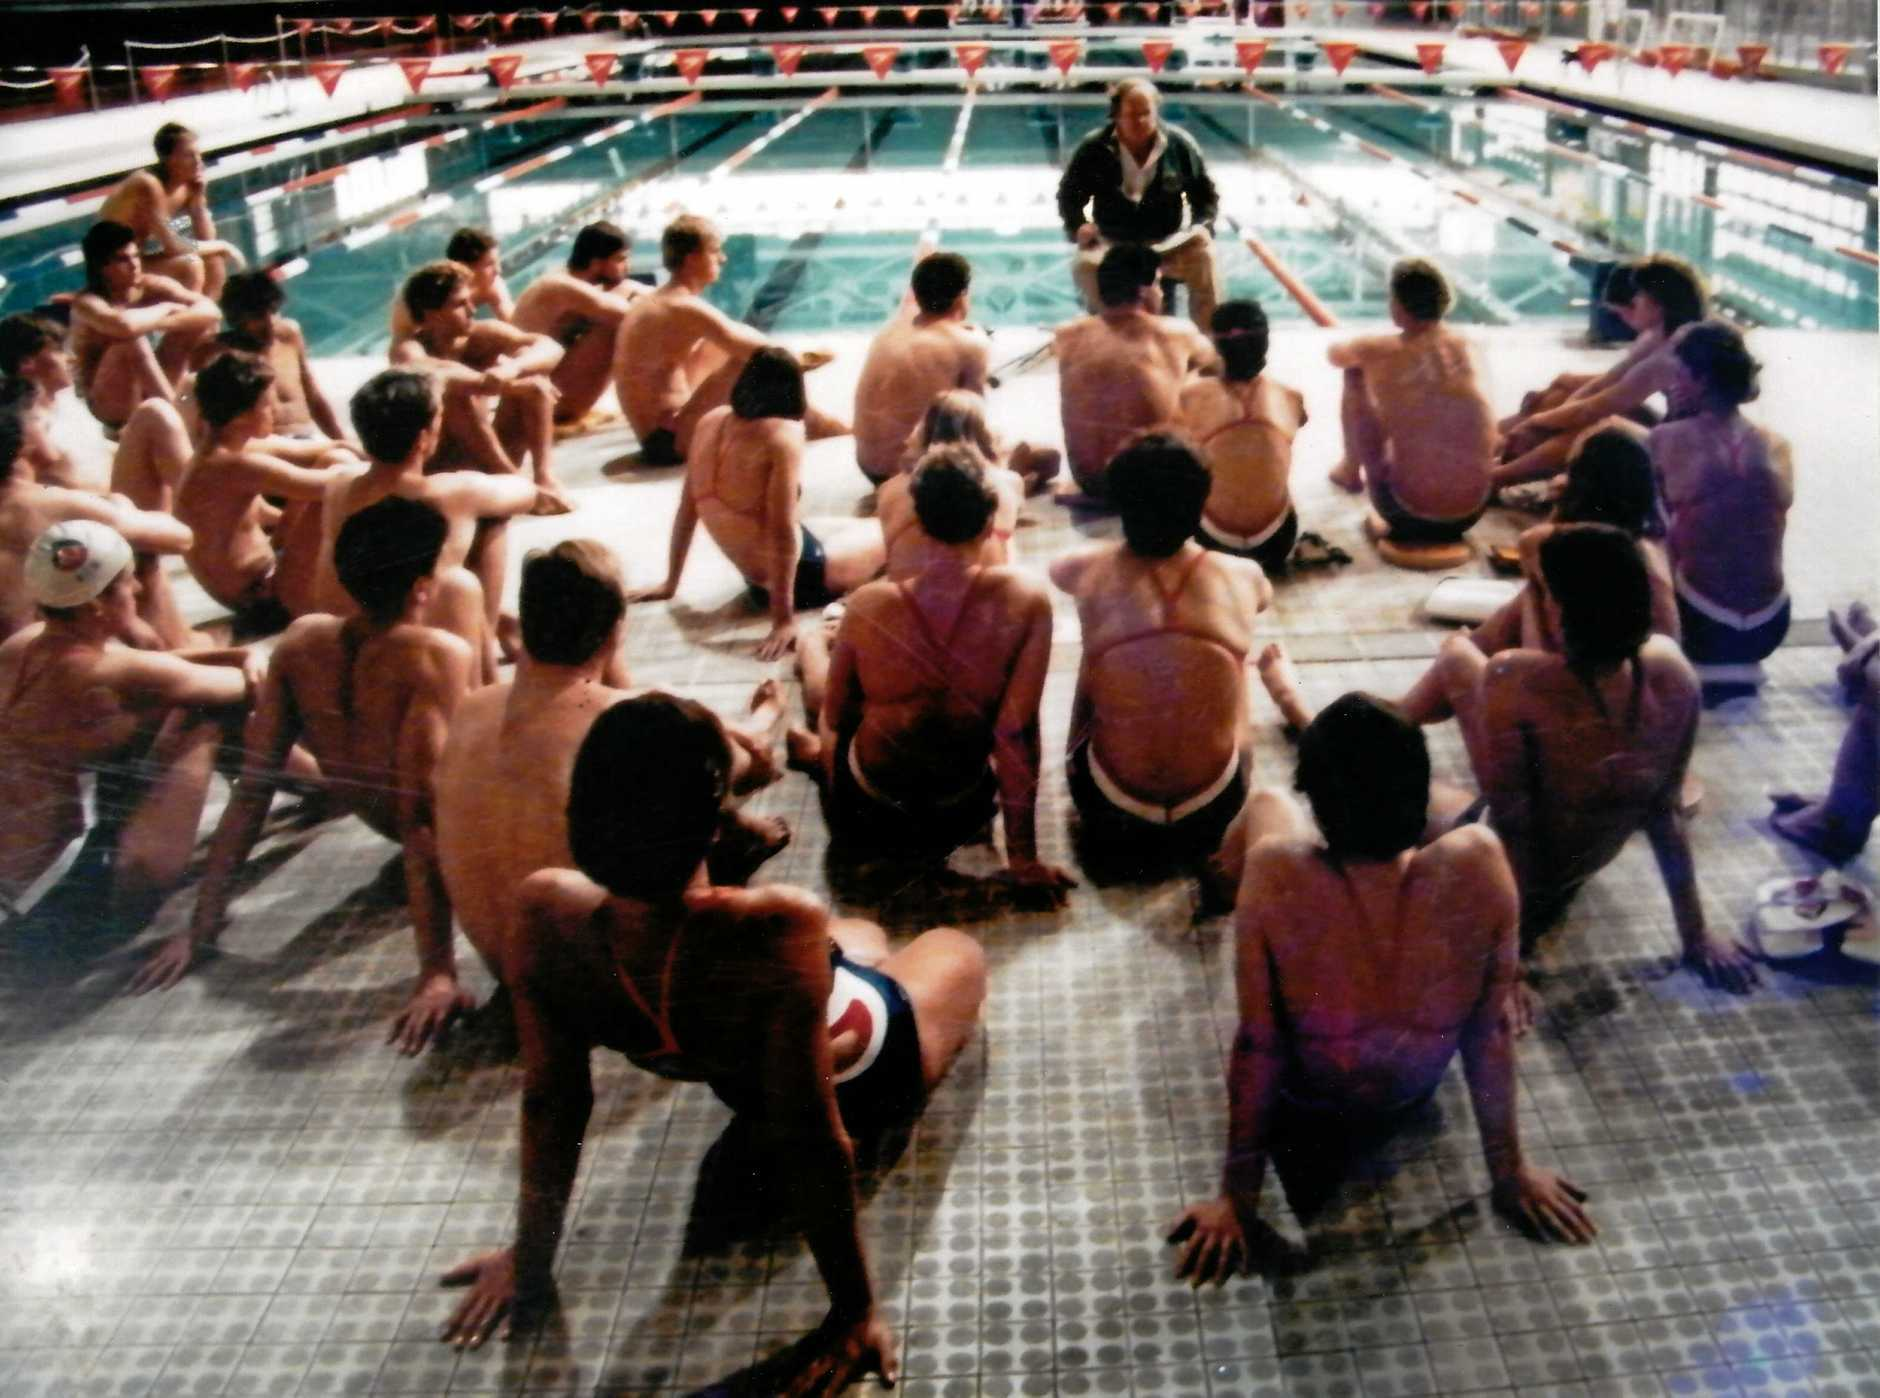 Bill Sweetenham (head coach) holds a large on-deck meeting with his Australian Institute of Sport team.